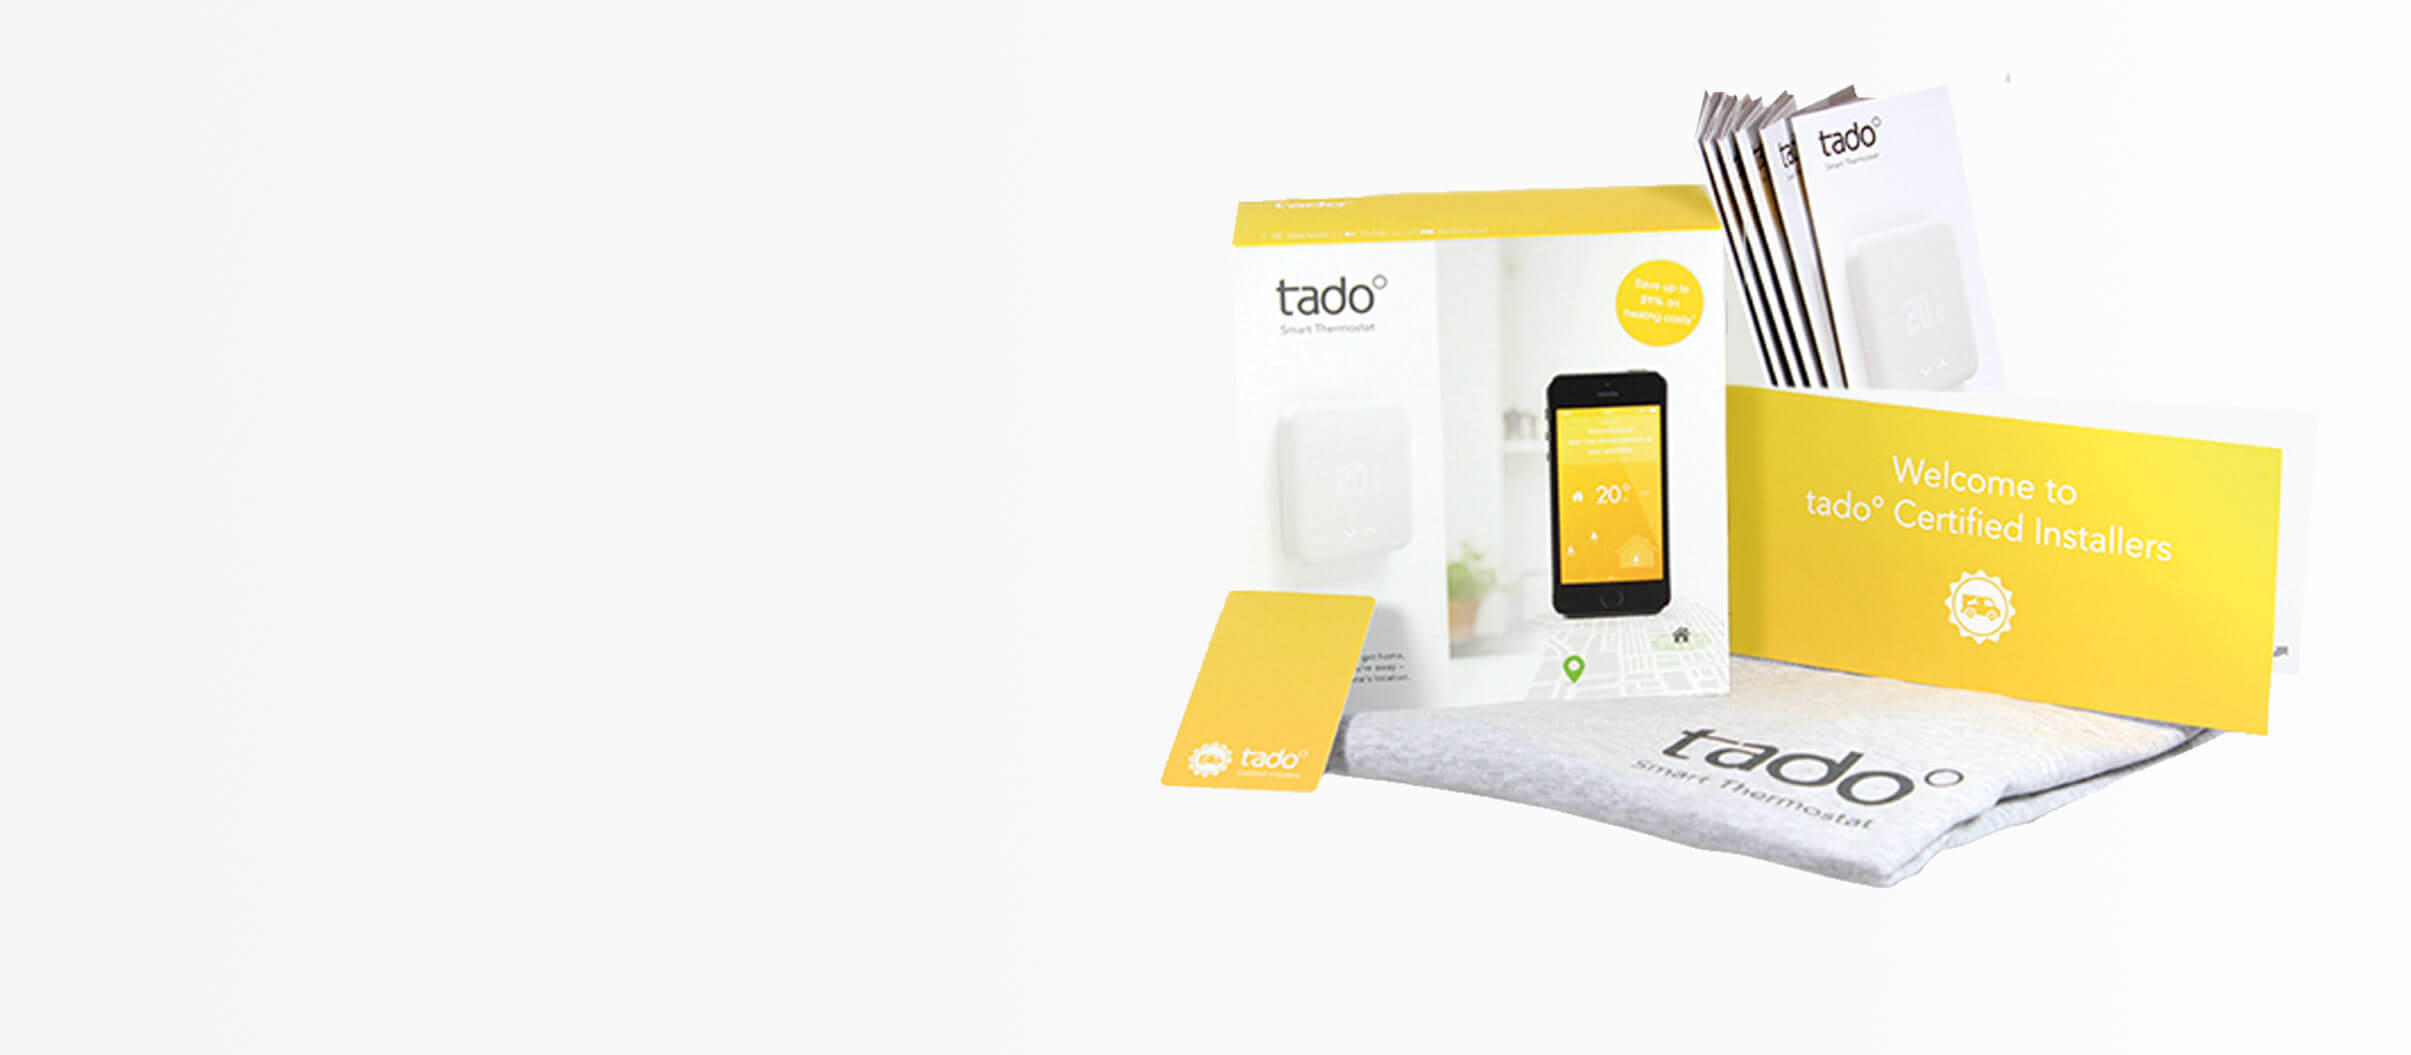 <h2>Be ready to compete in the first smart thermostat winter</h2> <p>Get started today with our exclusive member tado welcome pack</p>